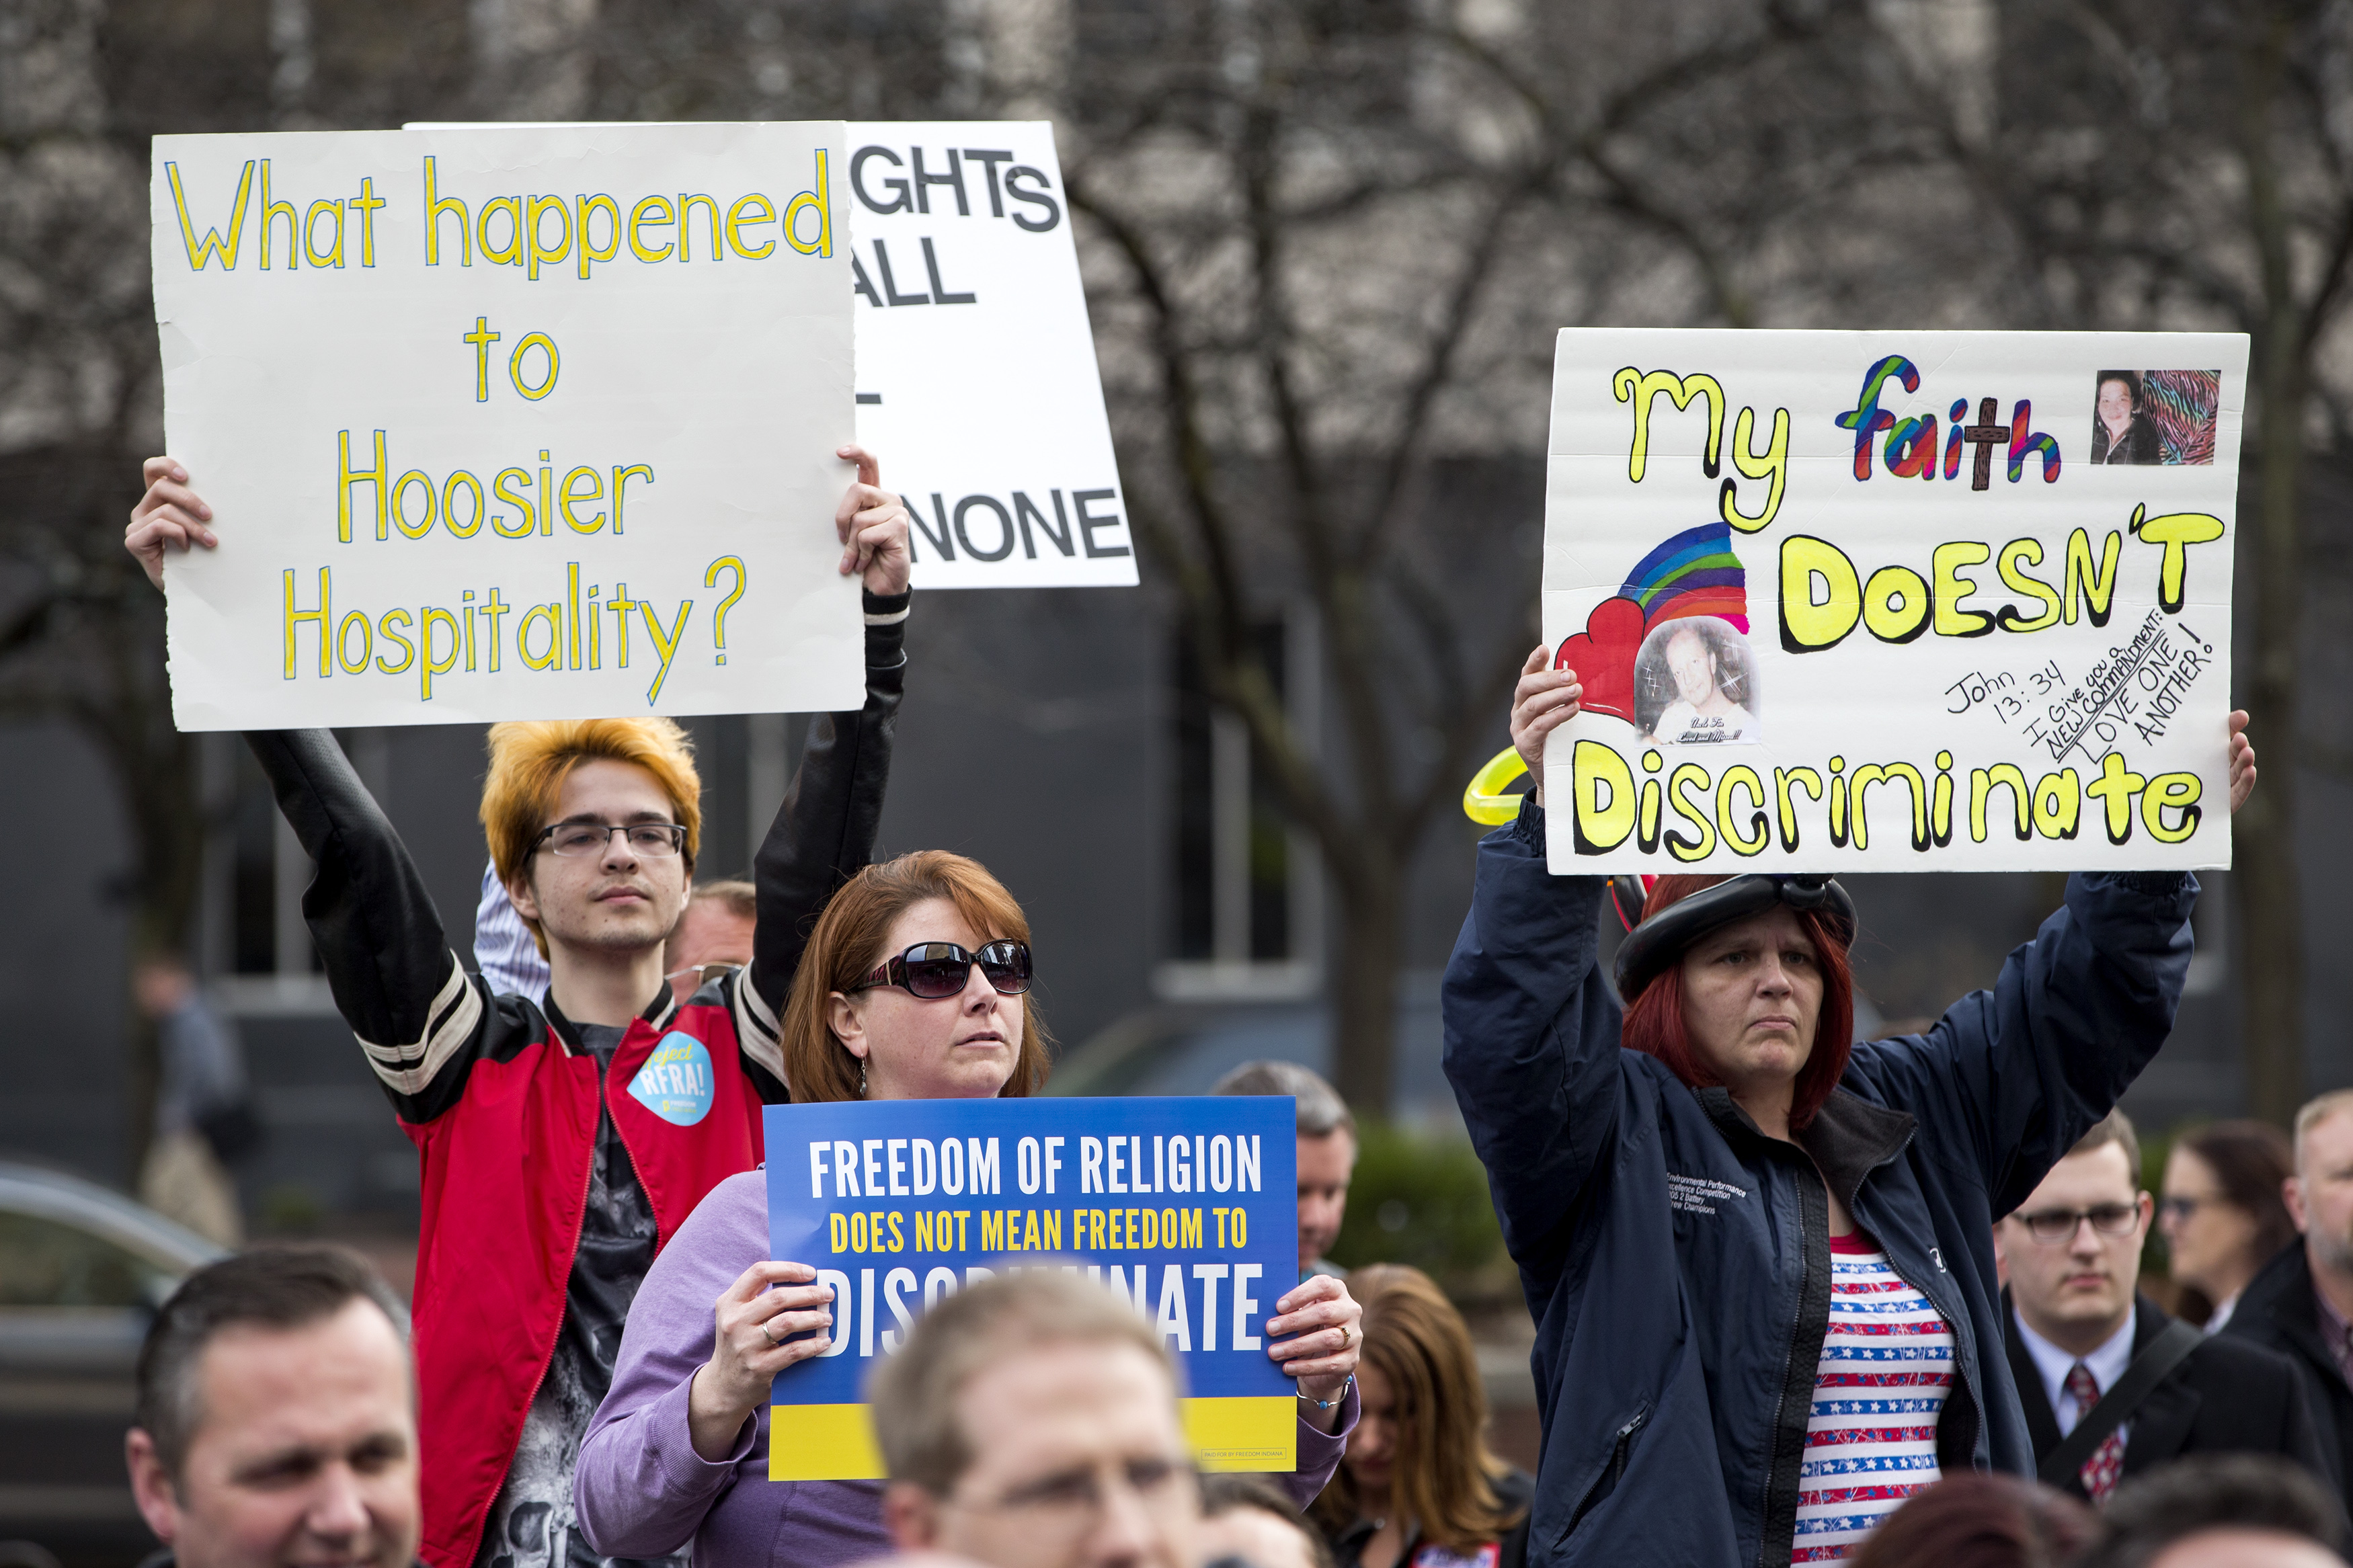 Demonstrators  gather outside the City County Building on March 30, 2015 in Indianapolis, Indiana. The group called on the state house to roll back the controversial Religious Freedom Restoration Act. (Getty)